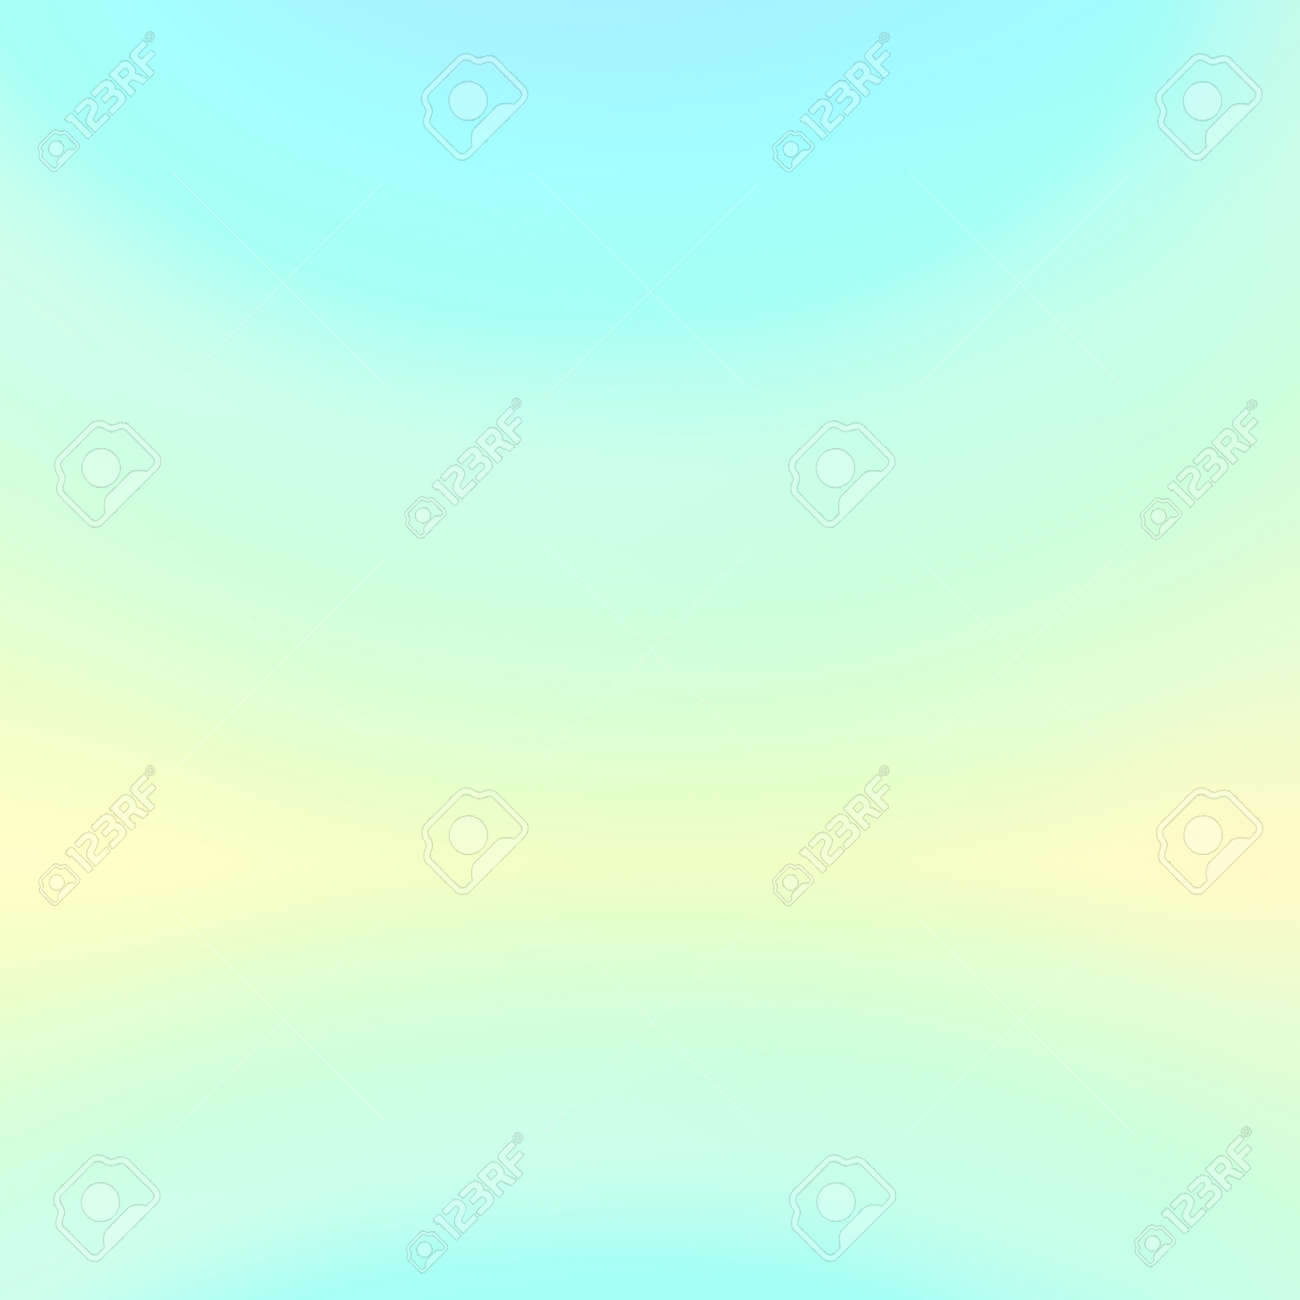 Particular Bright Center Sky Blue Or Baby Blue Light Color 37215964 Light Blue Background Defocused Abstract Design Pattern Bathroom Light Color Dresses houzz 01 Light Teal Color